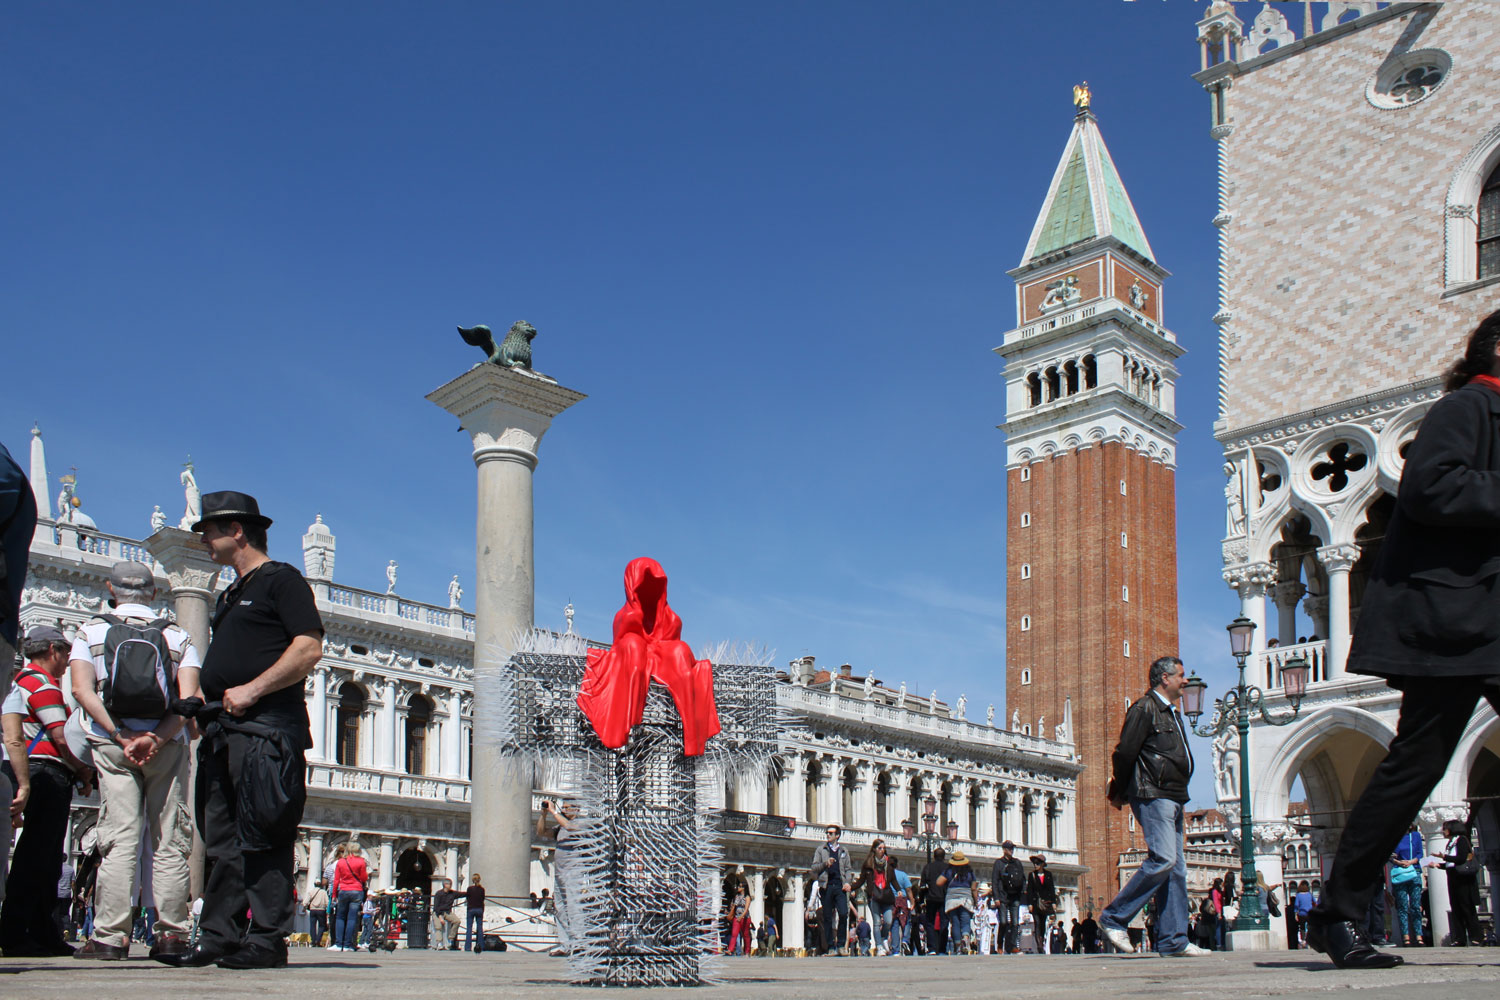 public-show-art-biennial-venice-italy-christoph-luckeneder-manfred-kielnhofer-t-guardian-sculpture-art-arts-arte-2692y